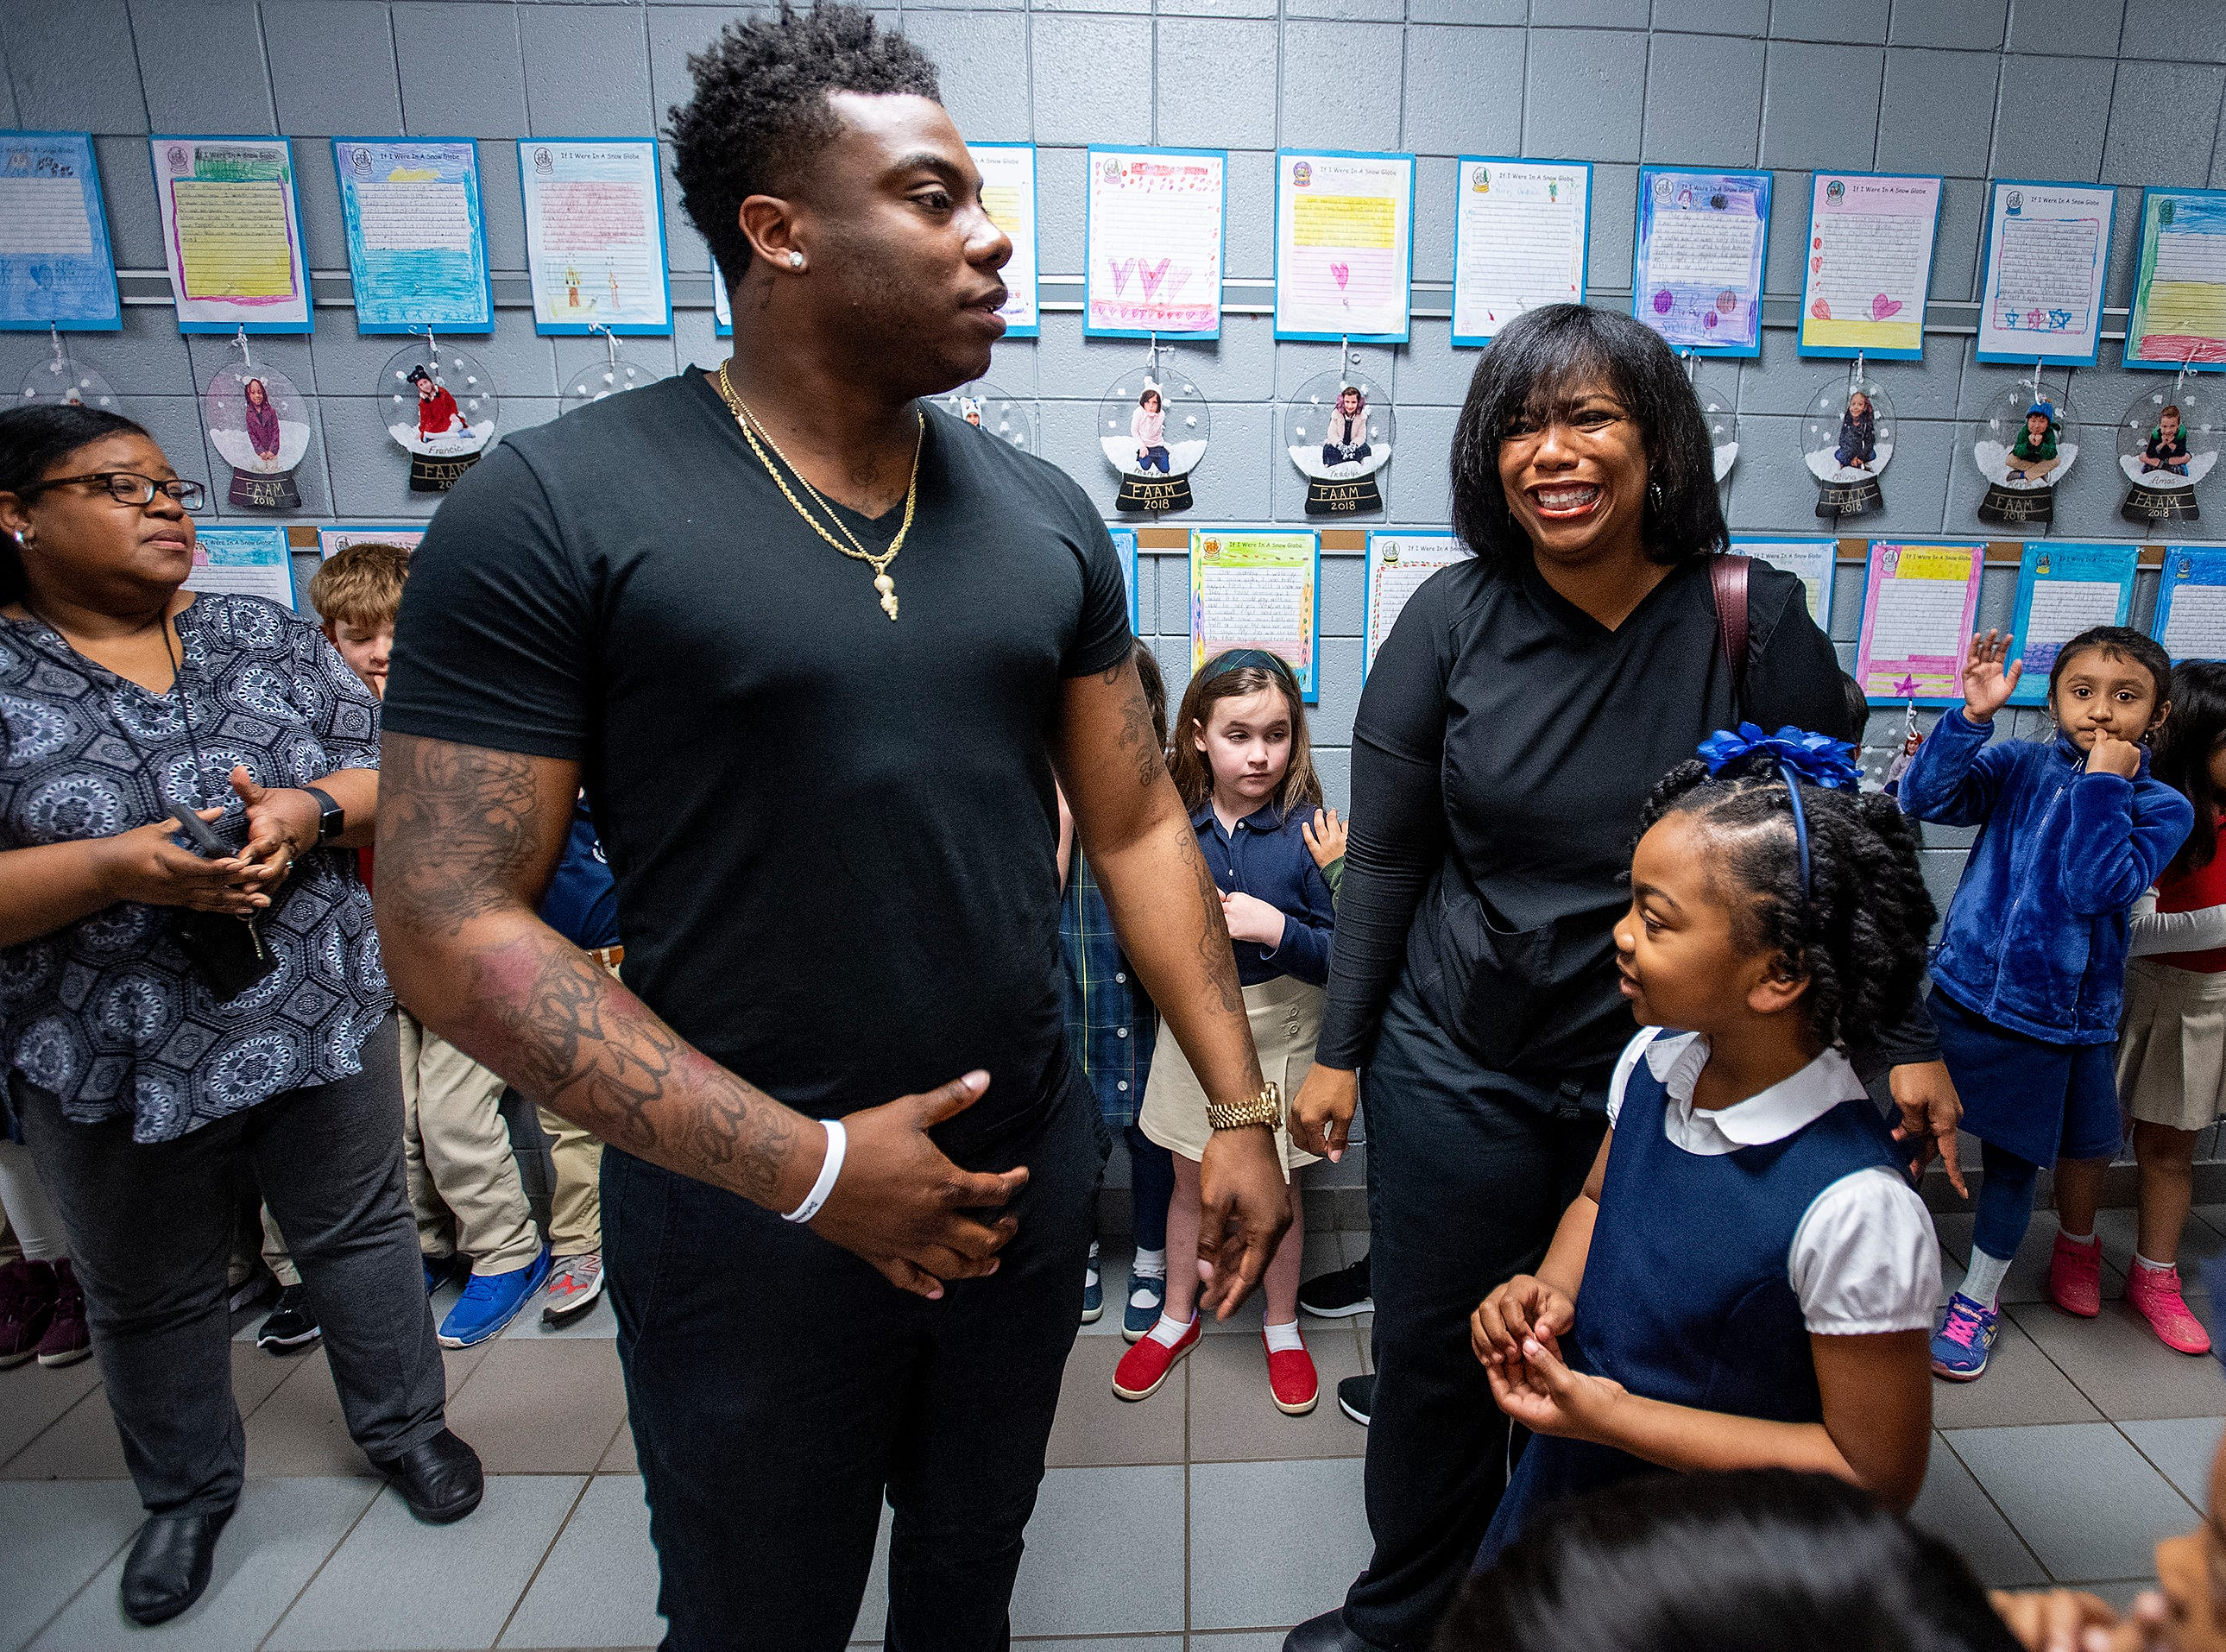 Kirk Jay, who finished third on The Voice, visits pupils at Forest Avenue School in Montgomery, Ala., on Tuesday February 5, 2019.